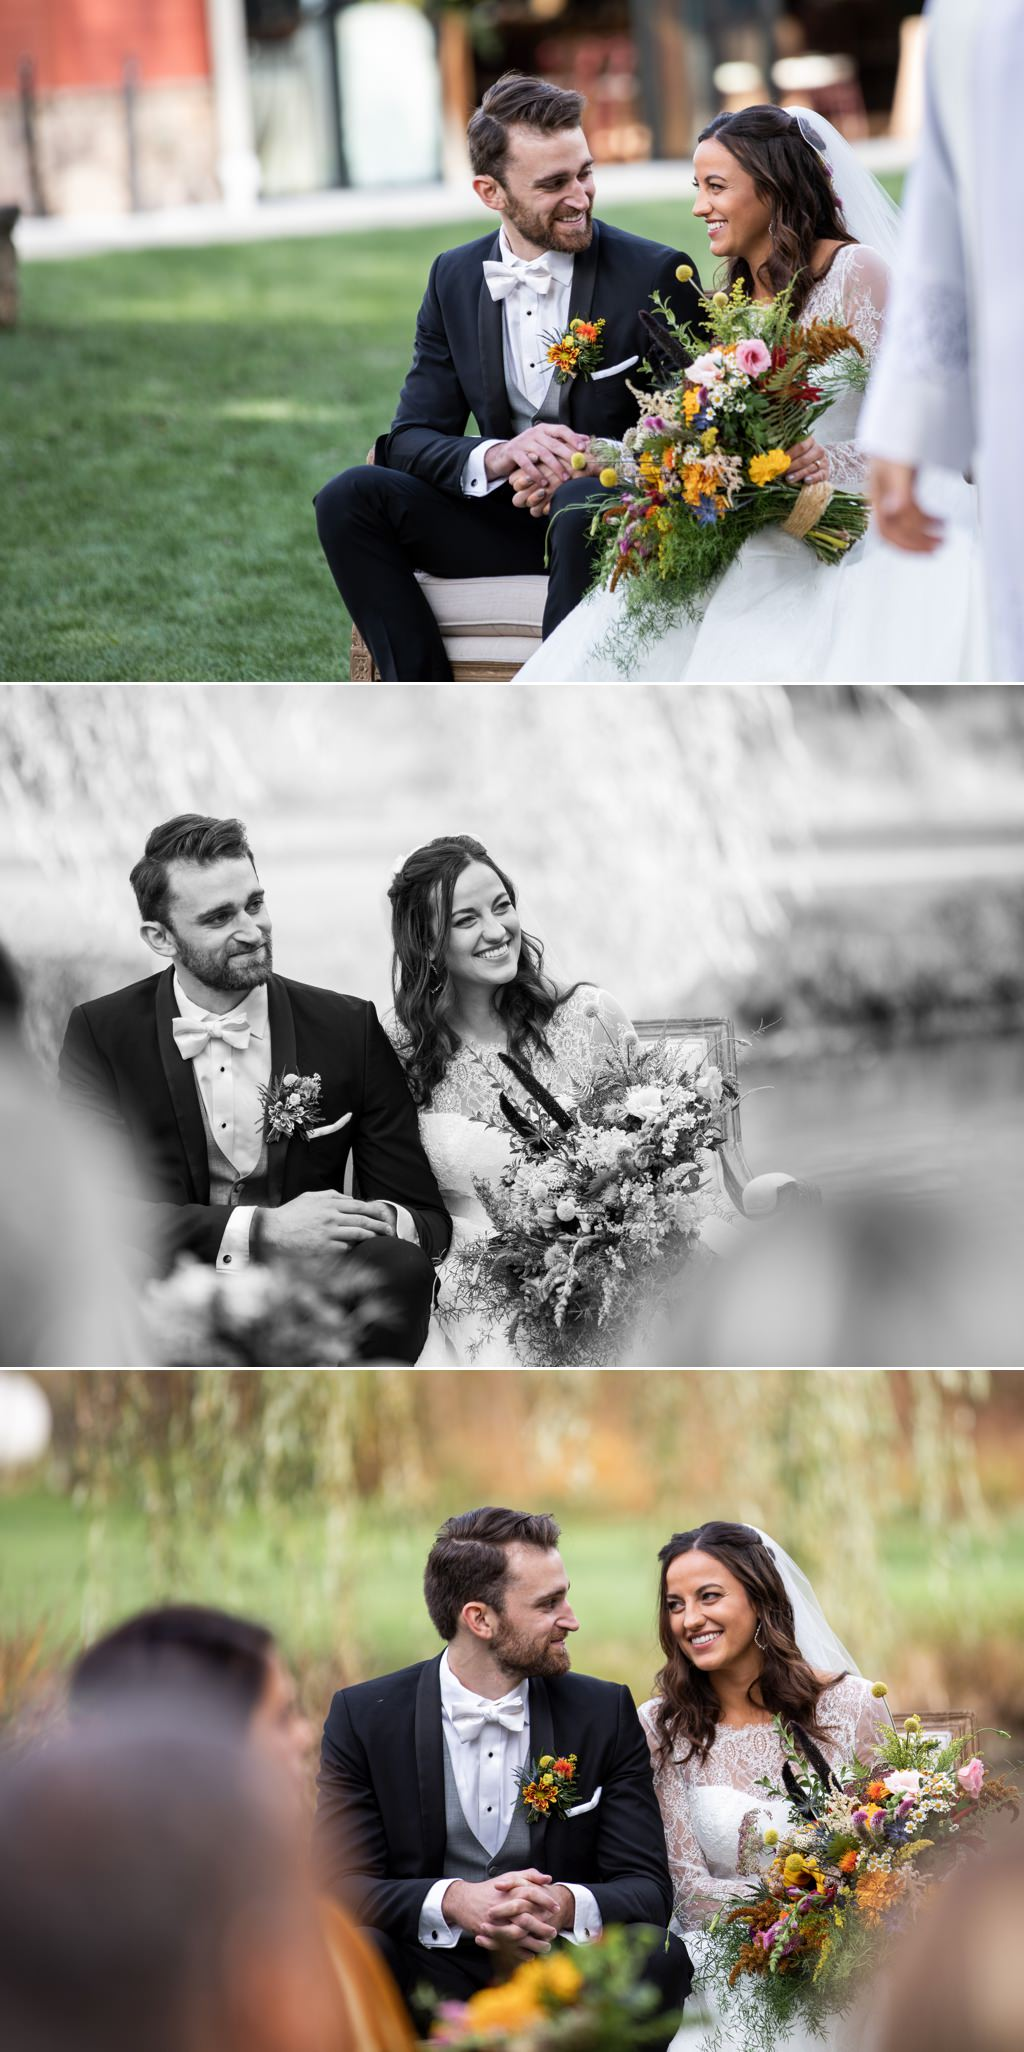 A bride and groom smiling at each other during their wedding ceremony at historic acres of hershey pa